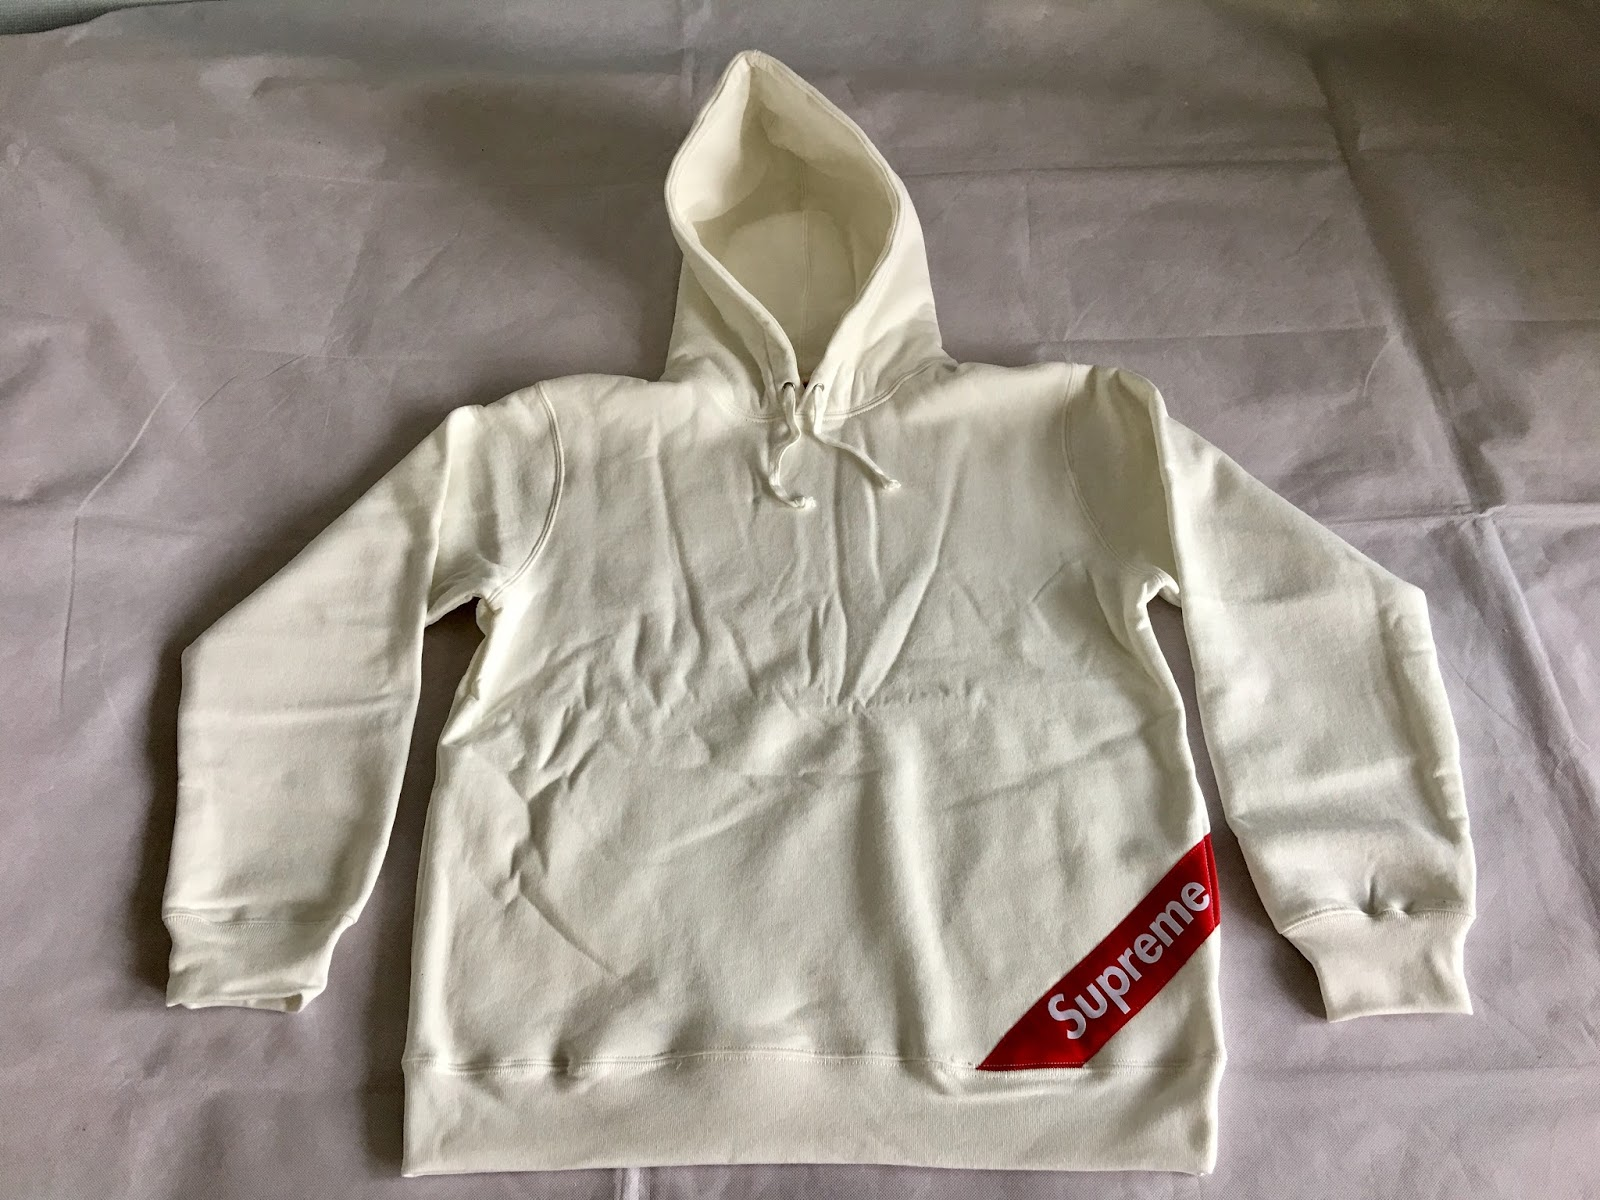 Biggest Streetwear Skateboarding And Fashion Clothing Brands Photo And Video Reviews Blog Supreme Corner Label Hooded Sweatshirt 18ss Review 22 02 2018 Week 1 Drop [ 1200 x 1600 Pixel ]